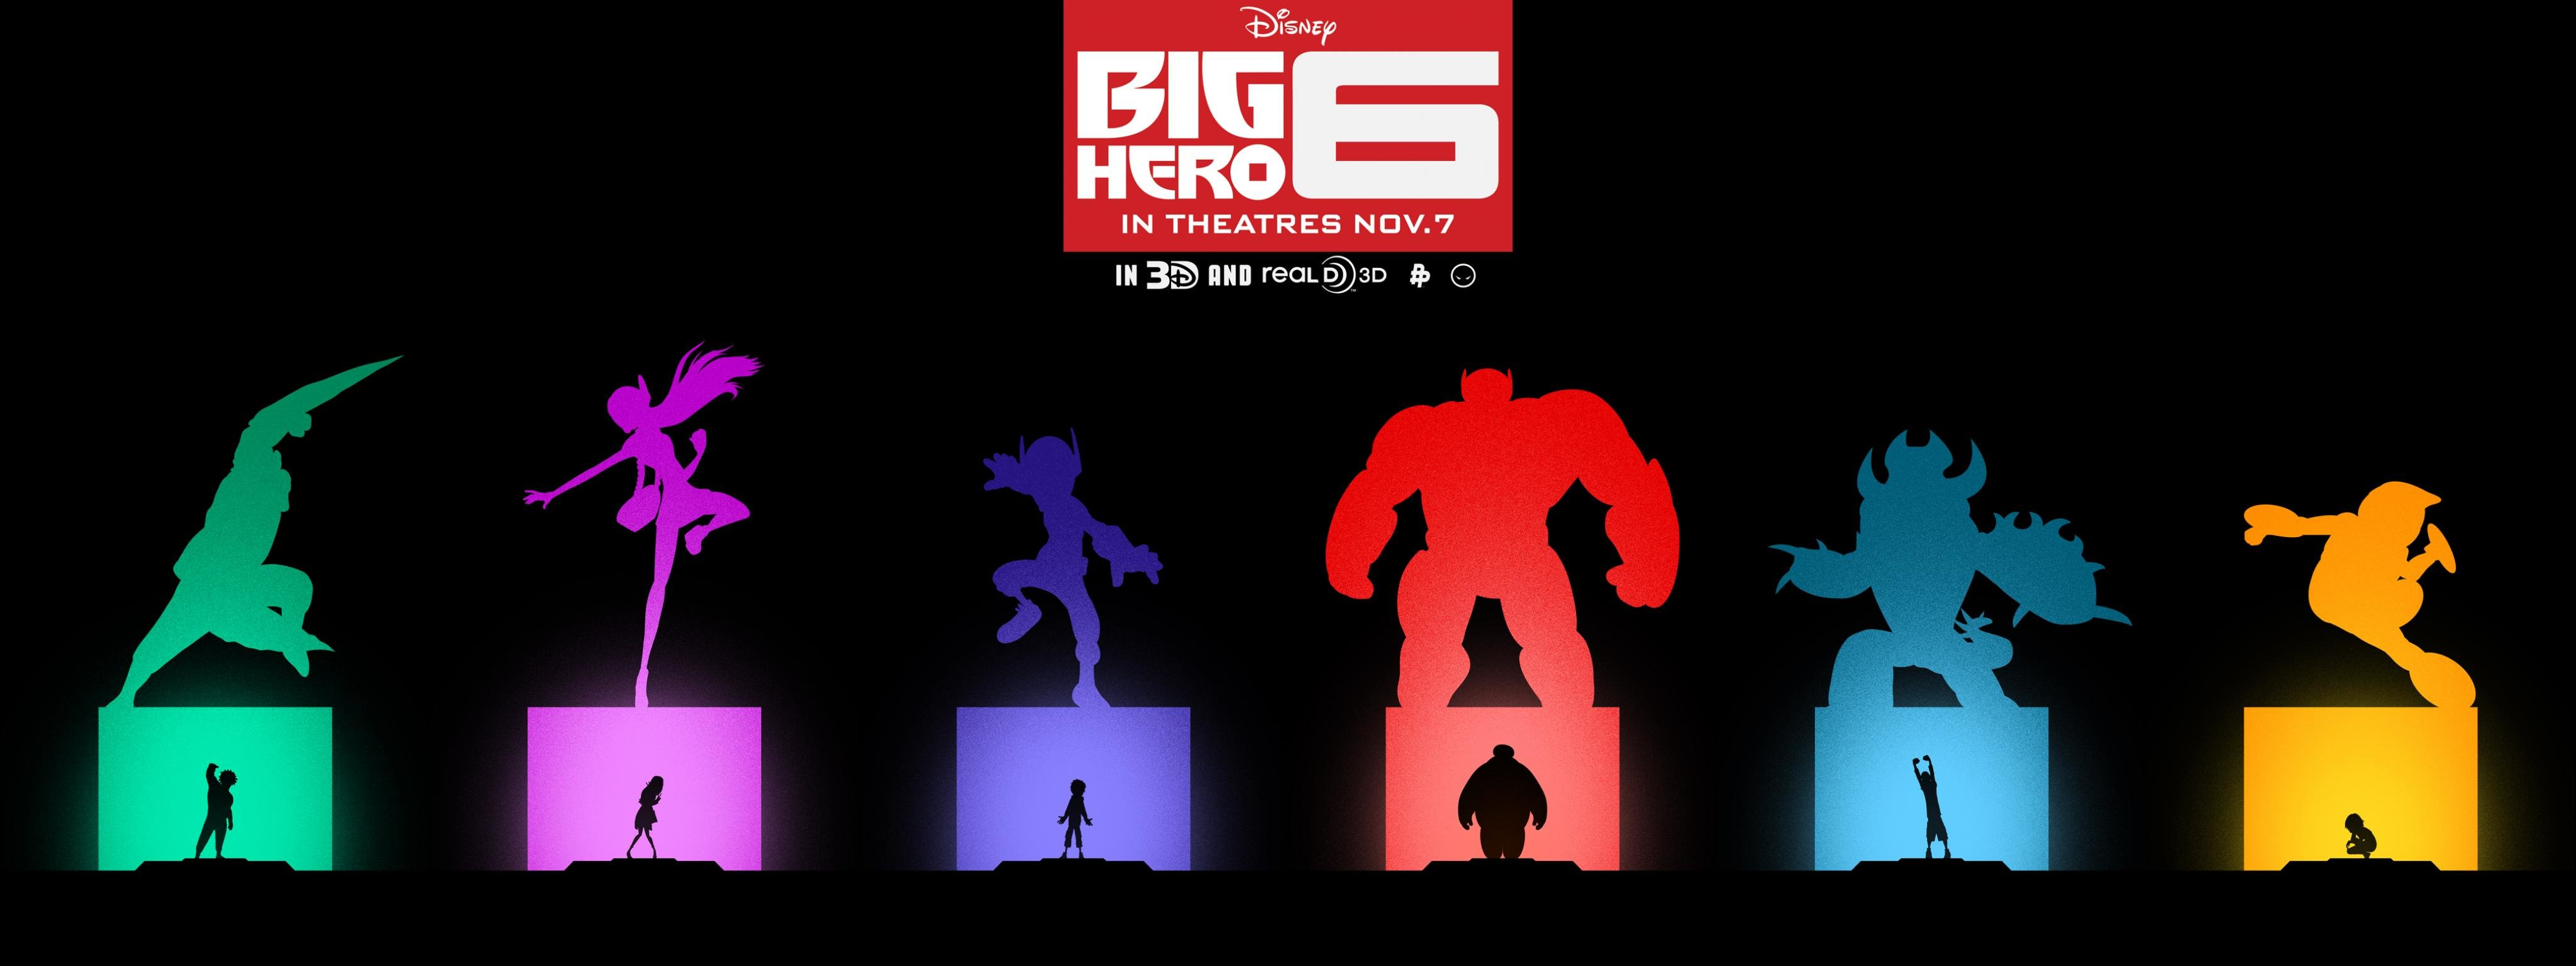 Awesome Big Hero 6 free wallpaper ID:298211 for dual screen 4096x1536 PC